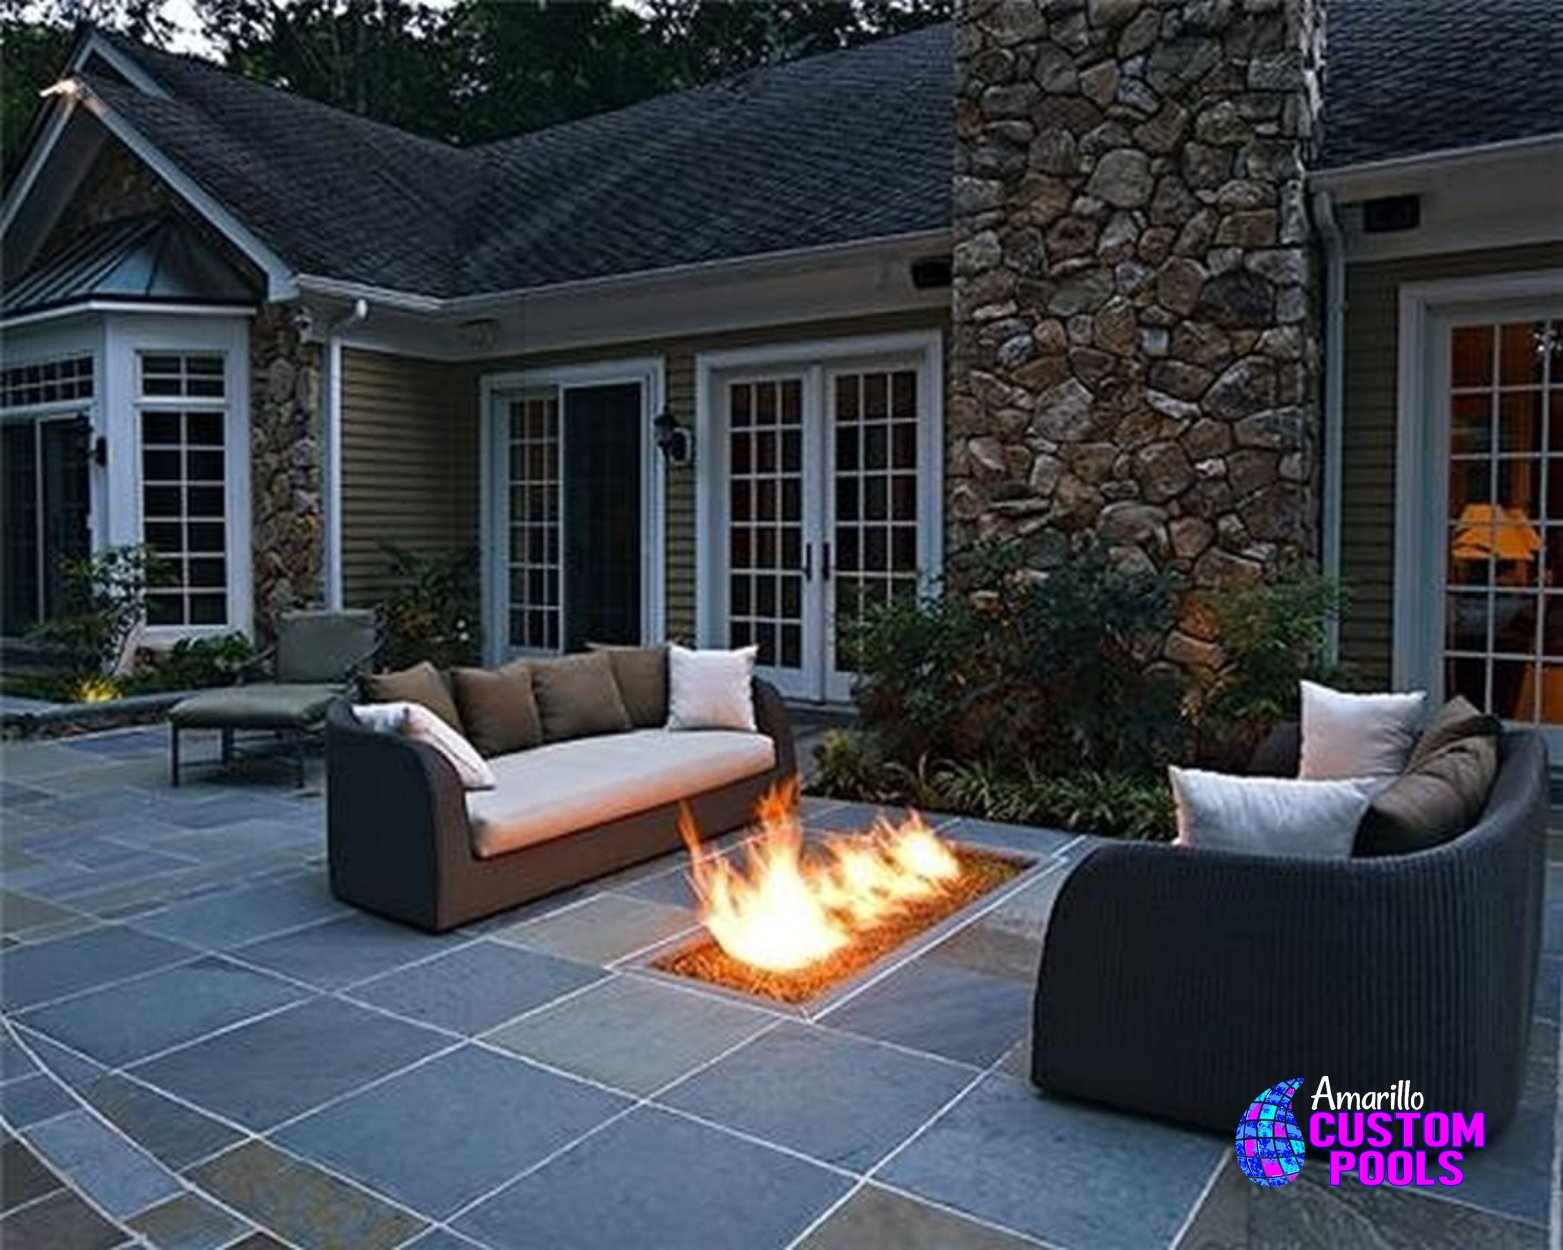 Outdoor Living Outdoor Kitchen Fireplaces Fire Pits Arbors ... on Backyard Patio With Firepit id=65279